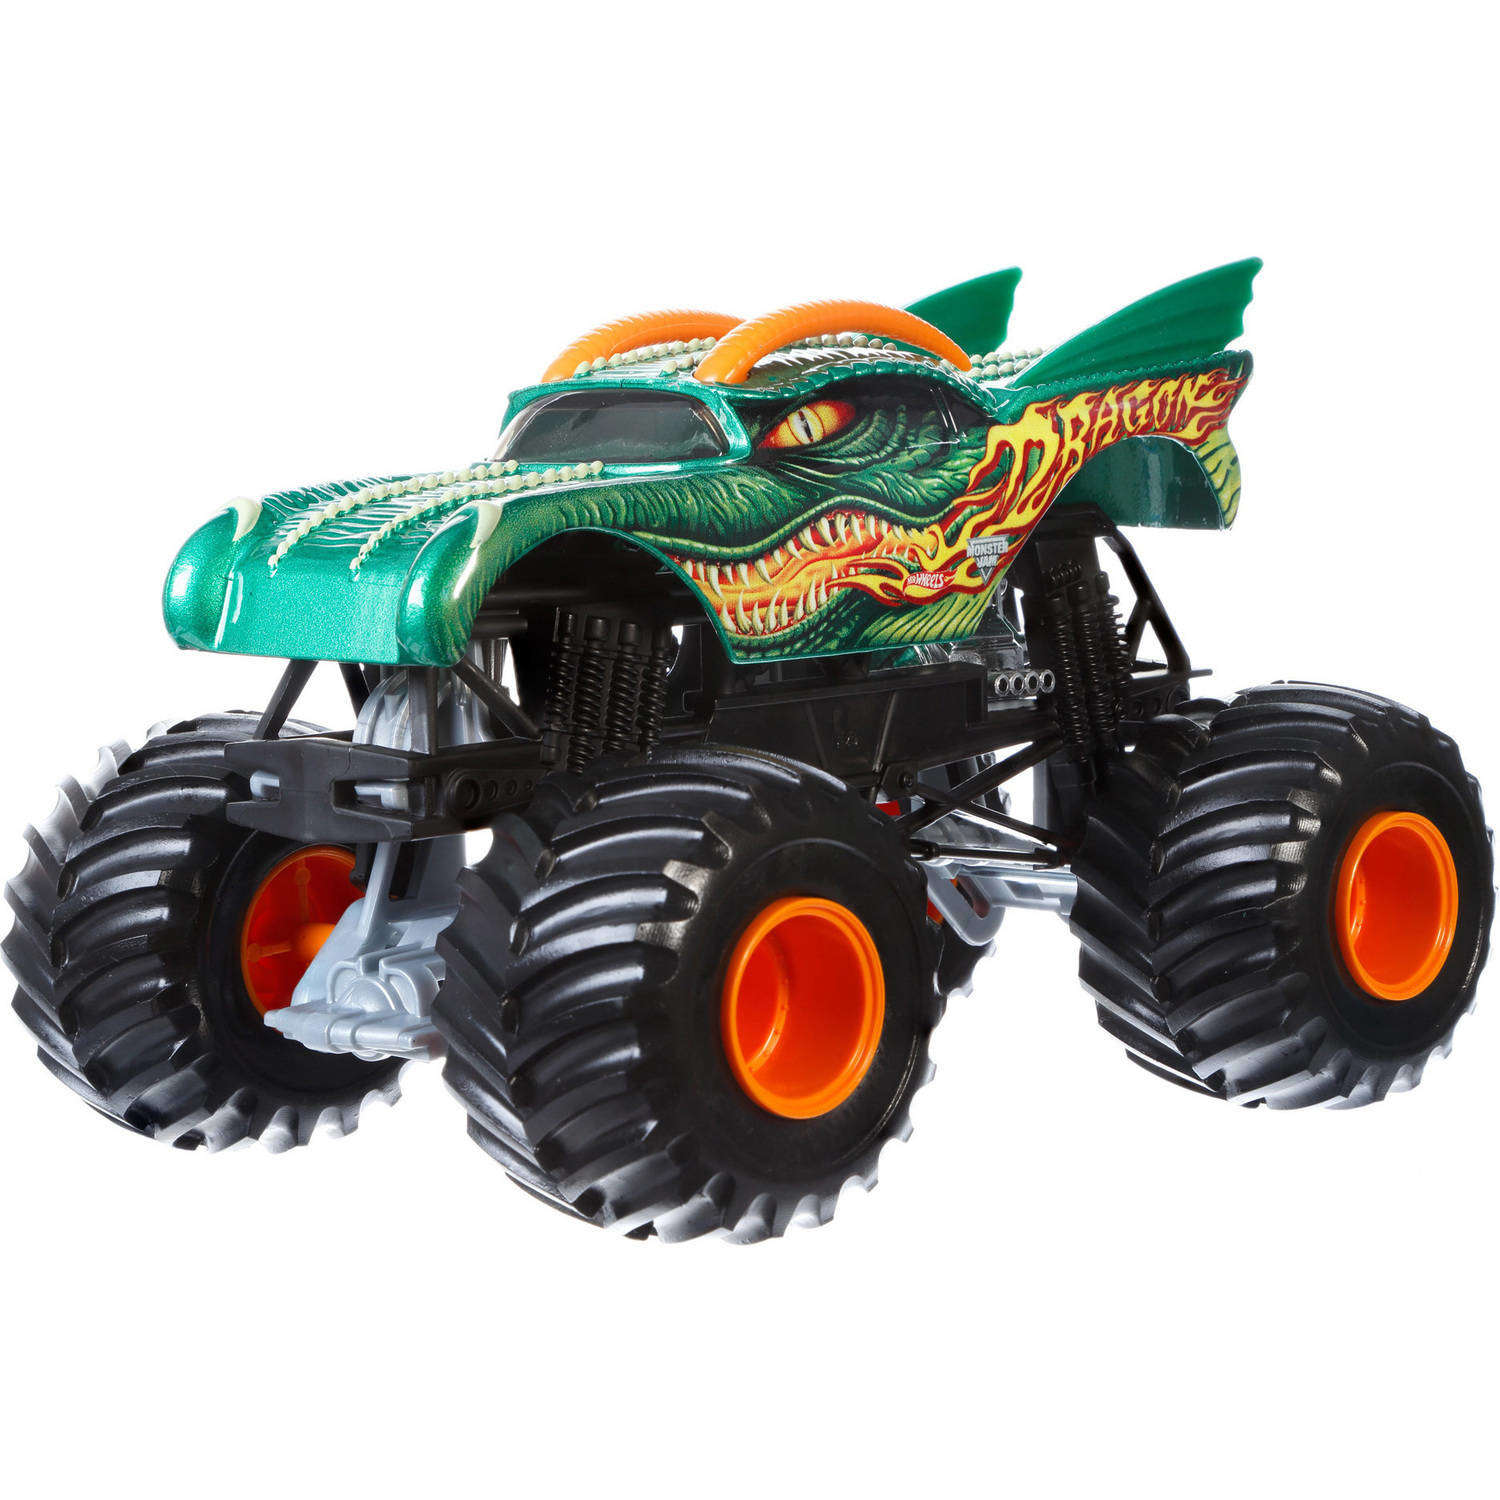 Hot Wheels Monster Jam Dragon Vehicle